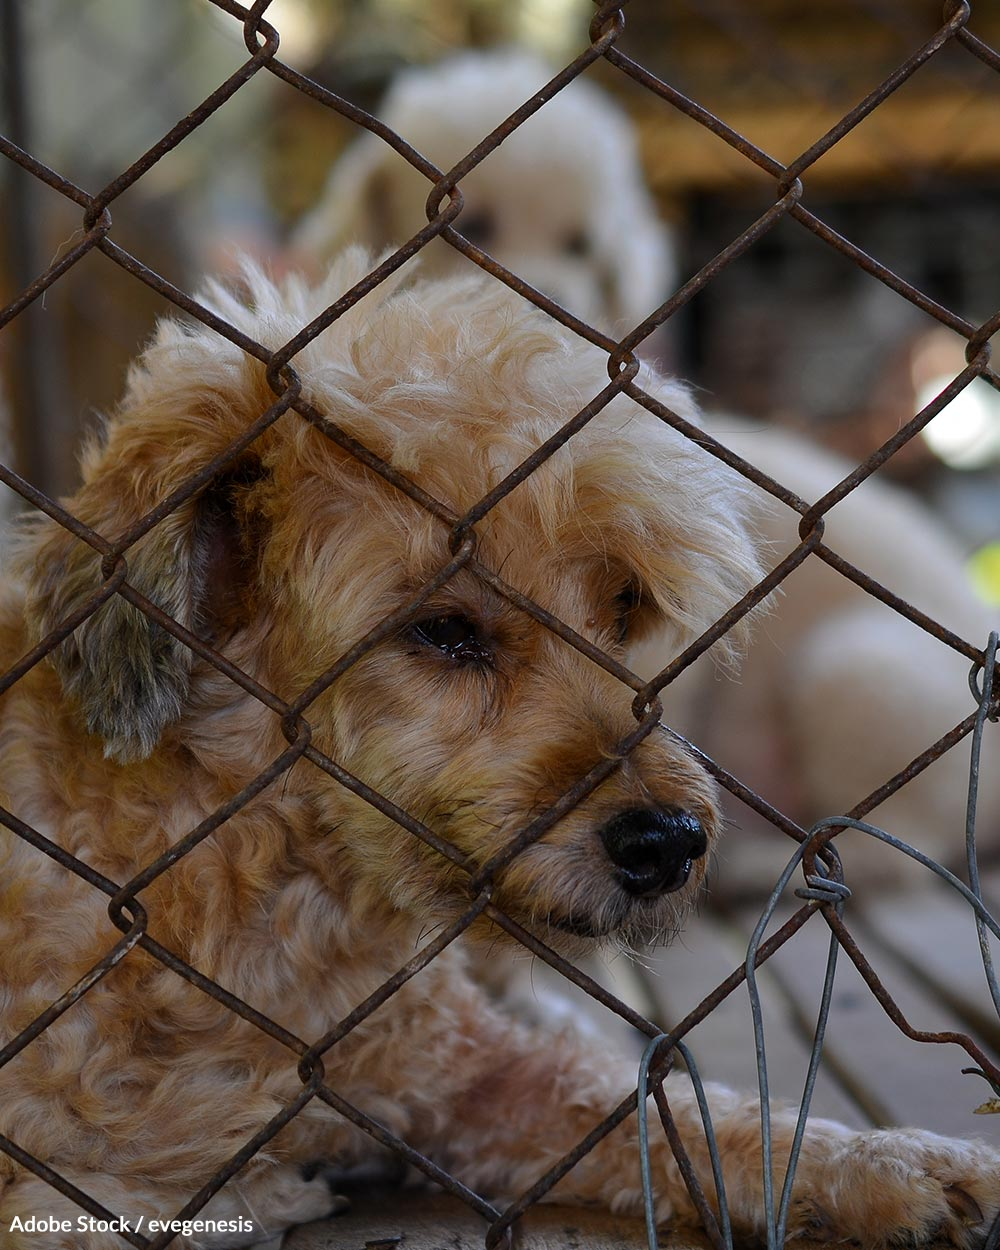 Thousands of puppy mills in the US use loopholes to avoid violating the Animal Welfare Act.